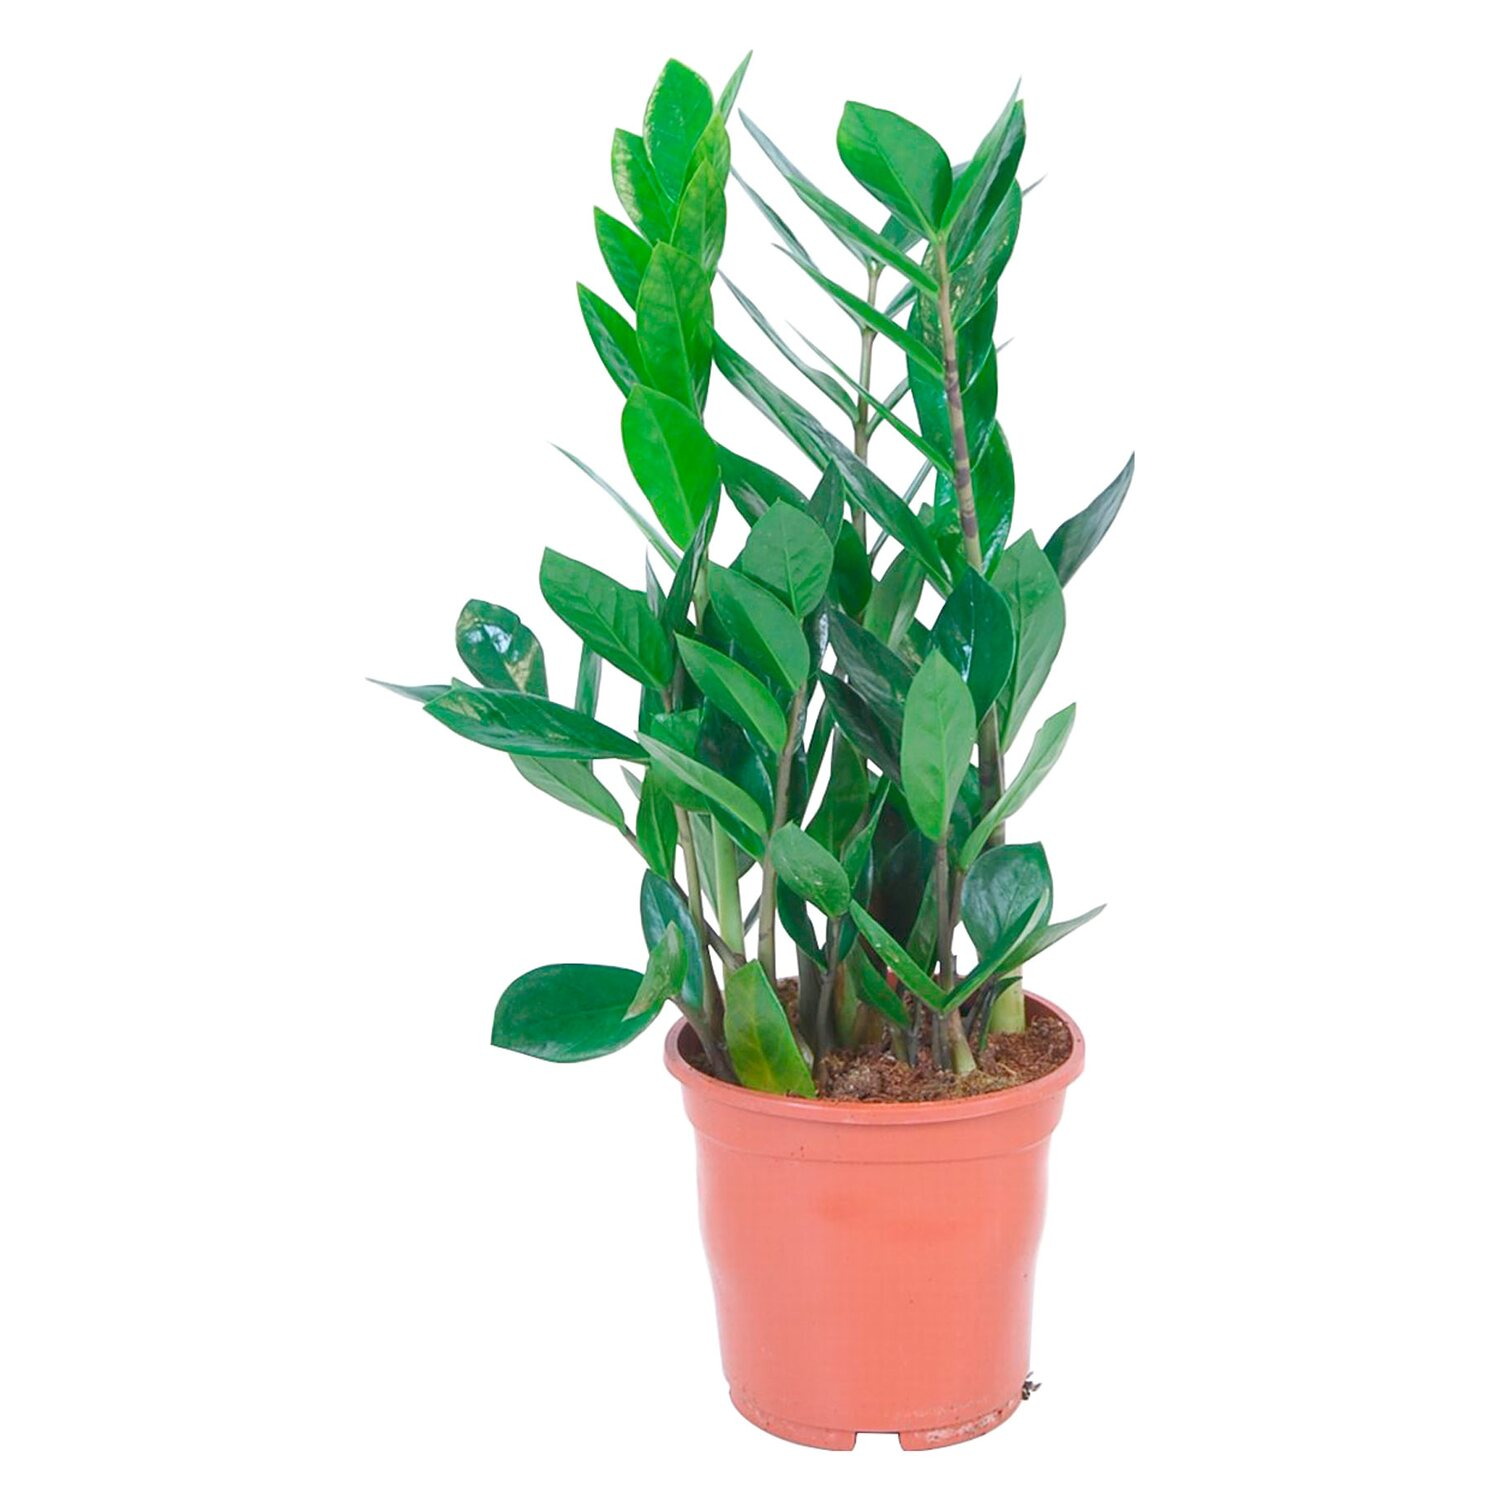 zamioculcas topf ca 14 cm zamioculcas zamiifolia kaufen. Black Bedroom Furniture Sets. Home Design Ideas